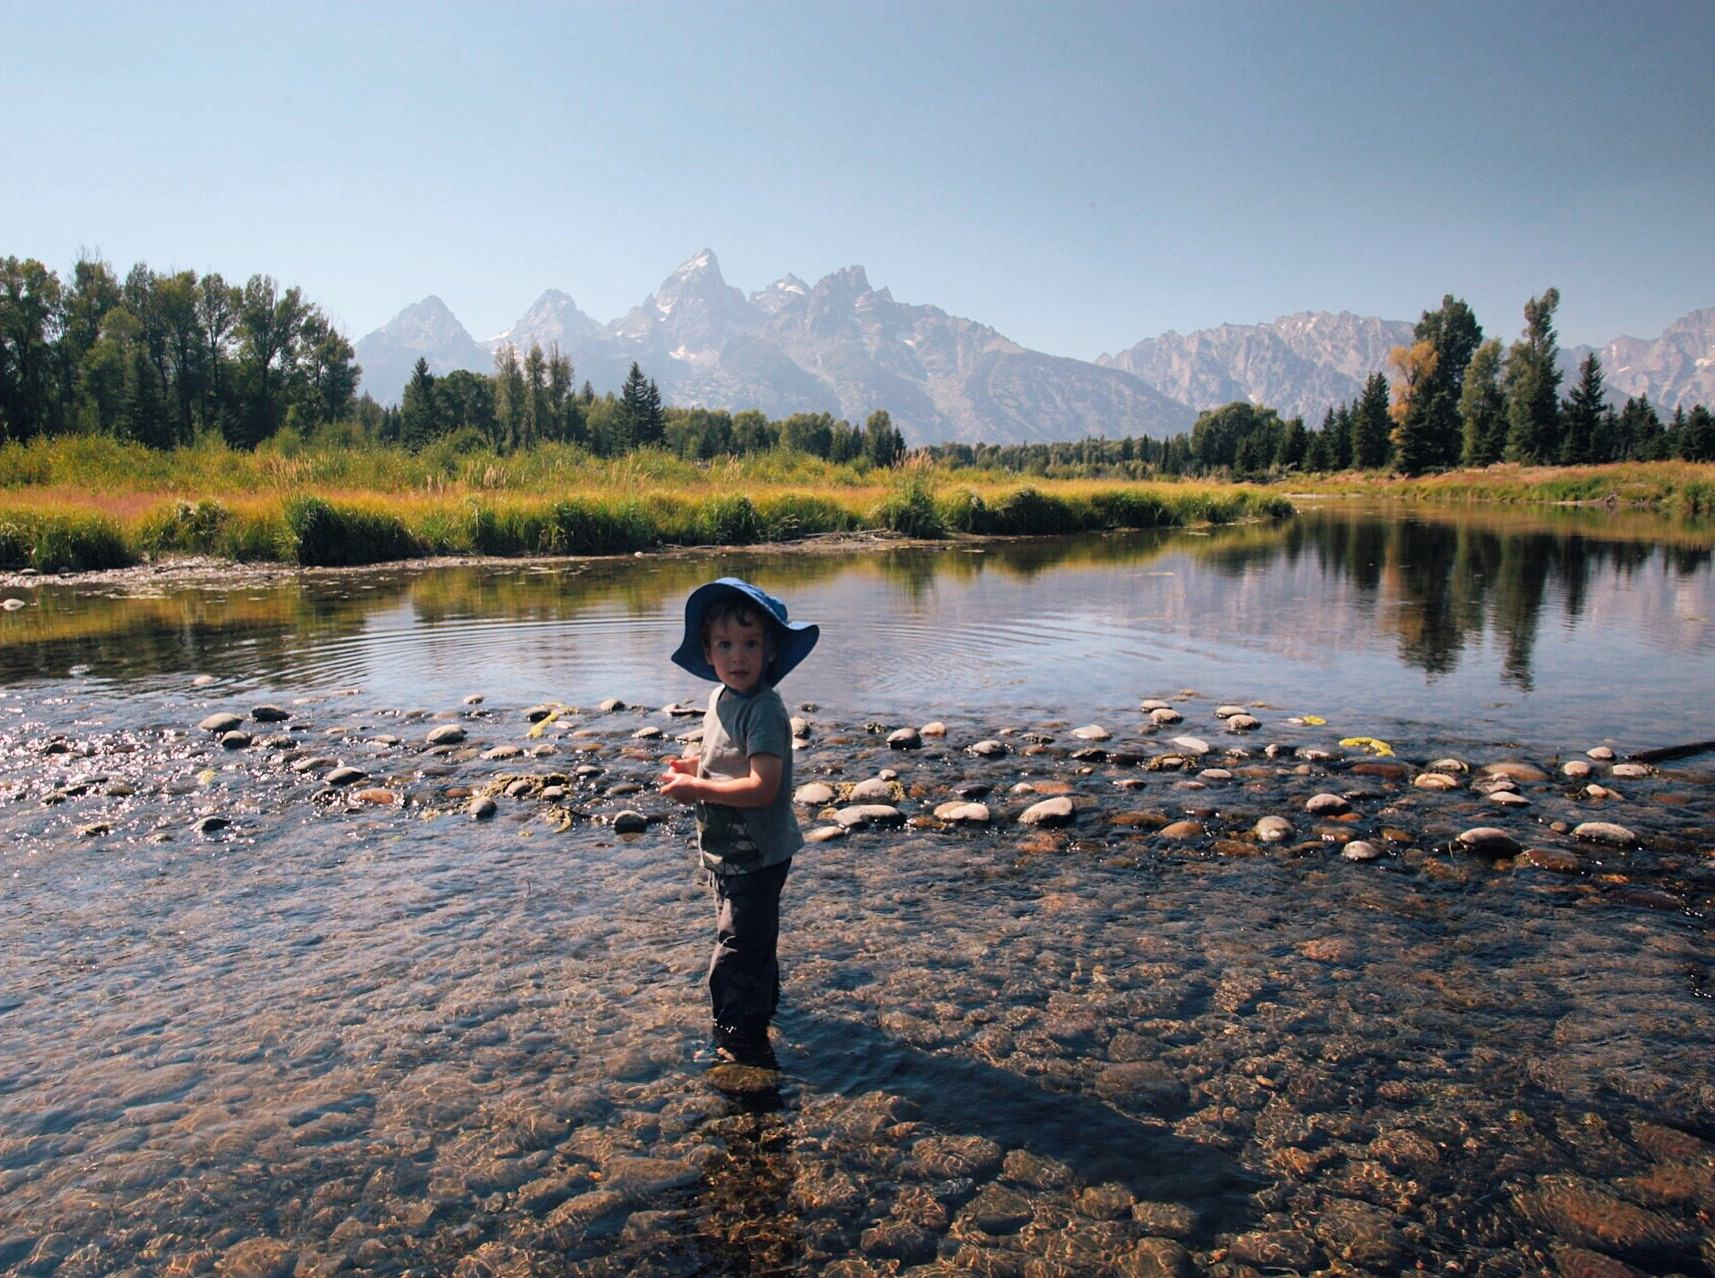 road-trip-with-kids-wyoming-thecuriosityprojectblog-IMG_9337.JPG